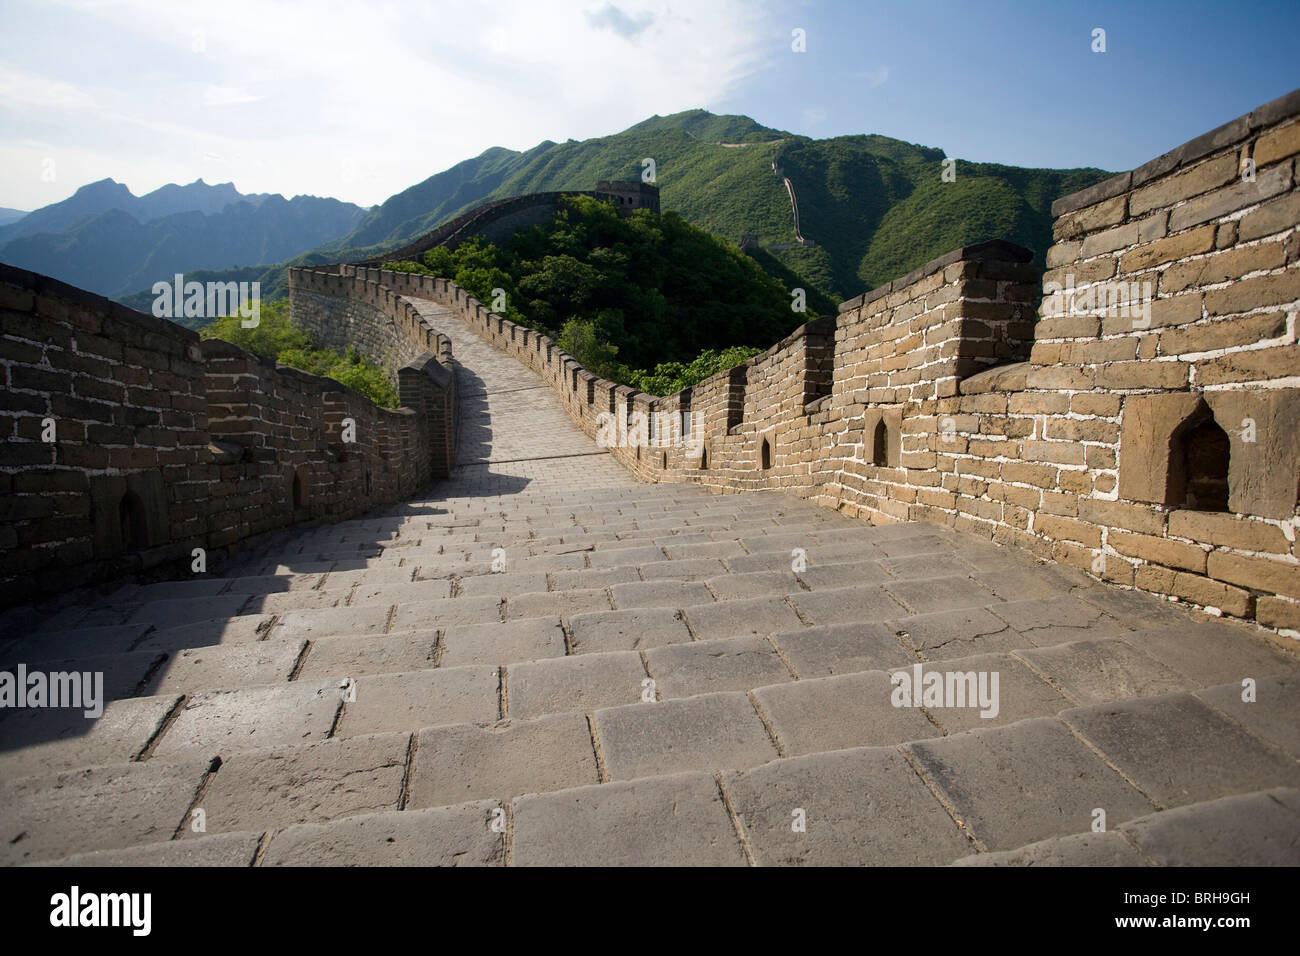 The Great Wall of China, Mutianyu - Stock Image